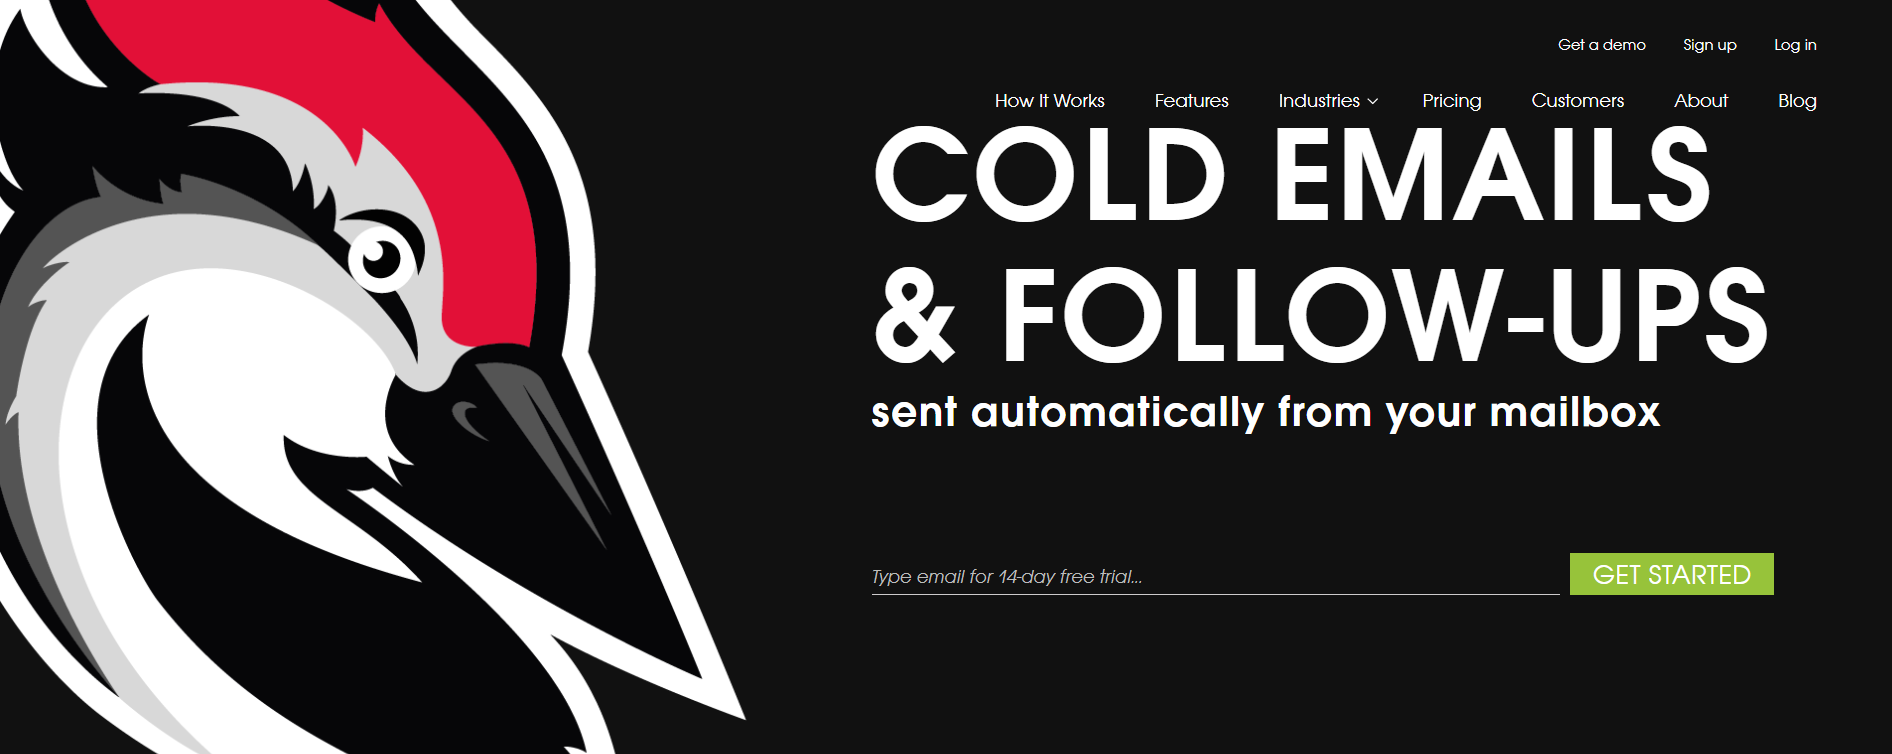 Woodpecker co - Cold Emails & Follow-ups